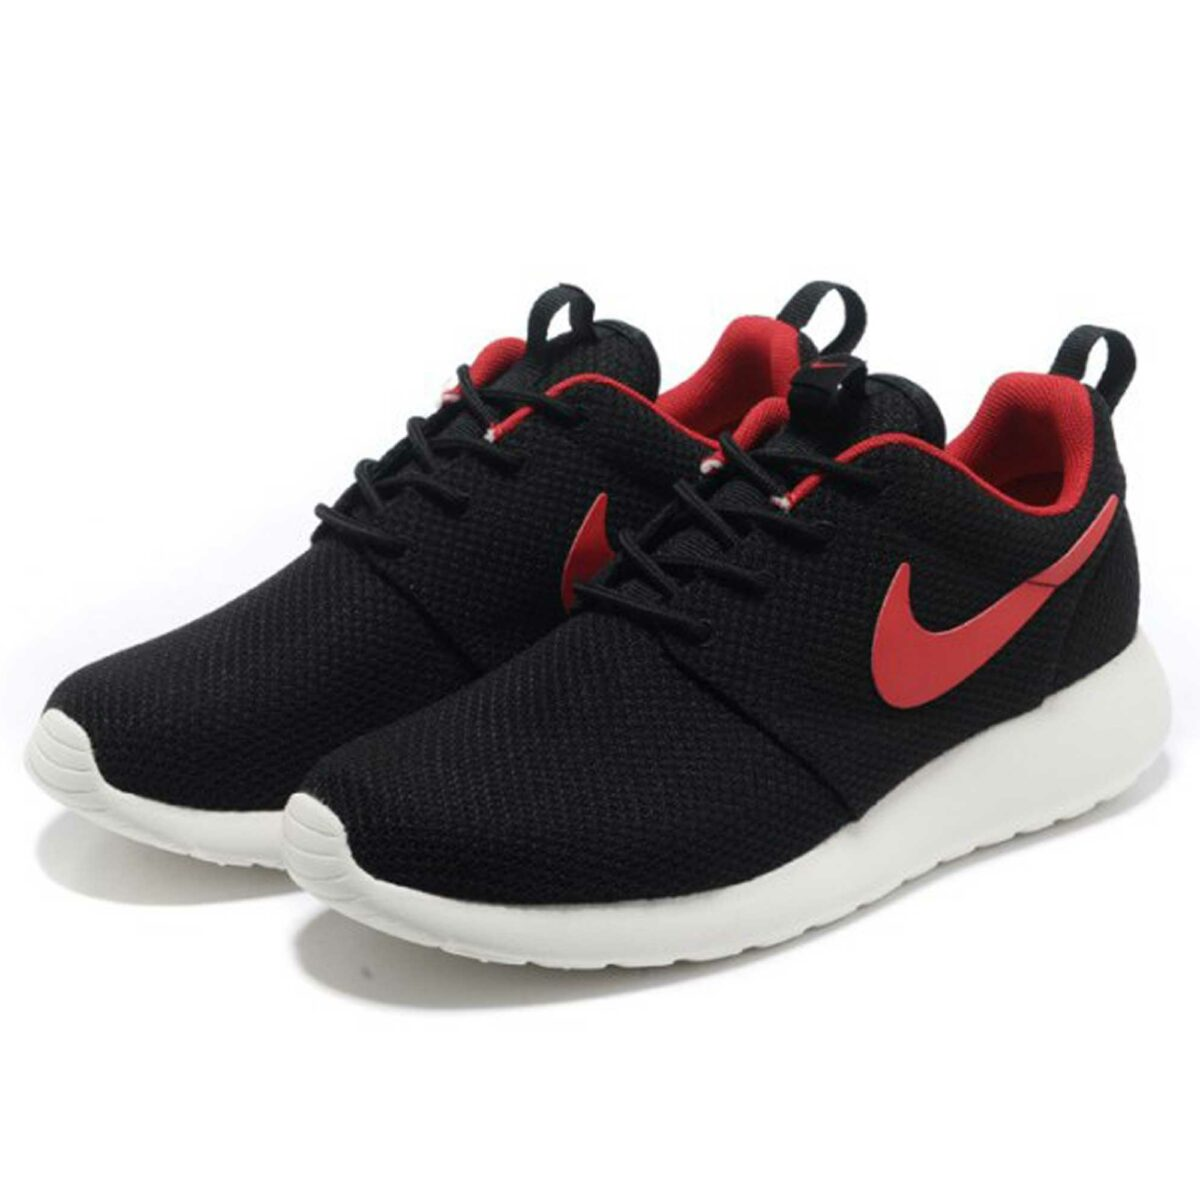 nike roshe run london black red swoosh 511881_058 купить